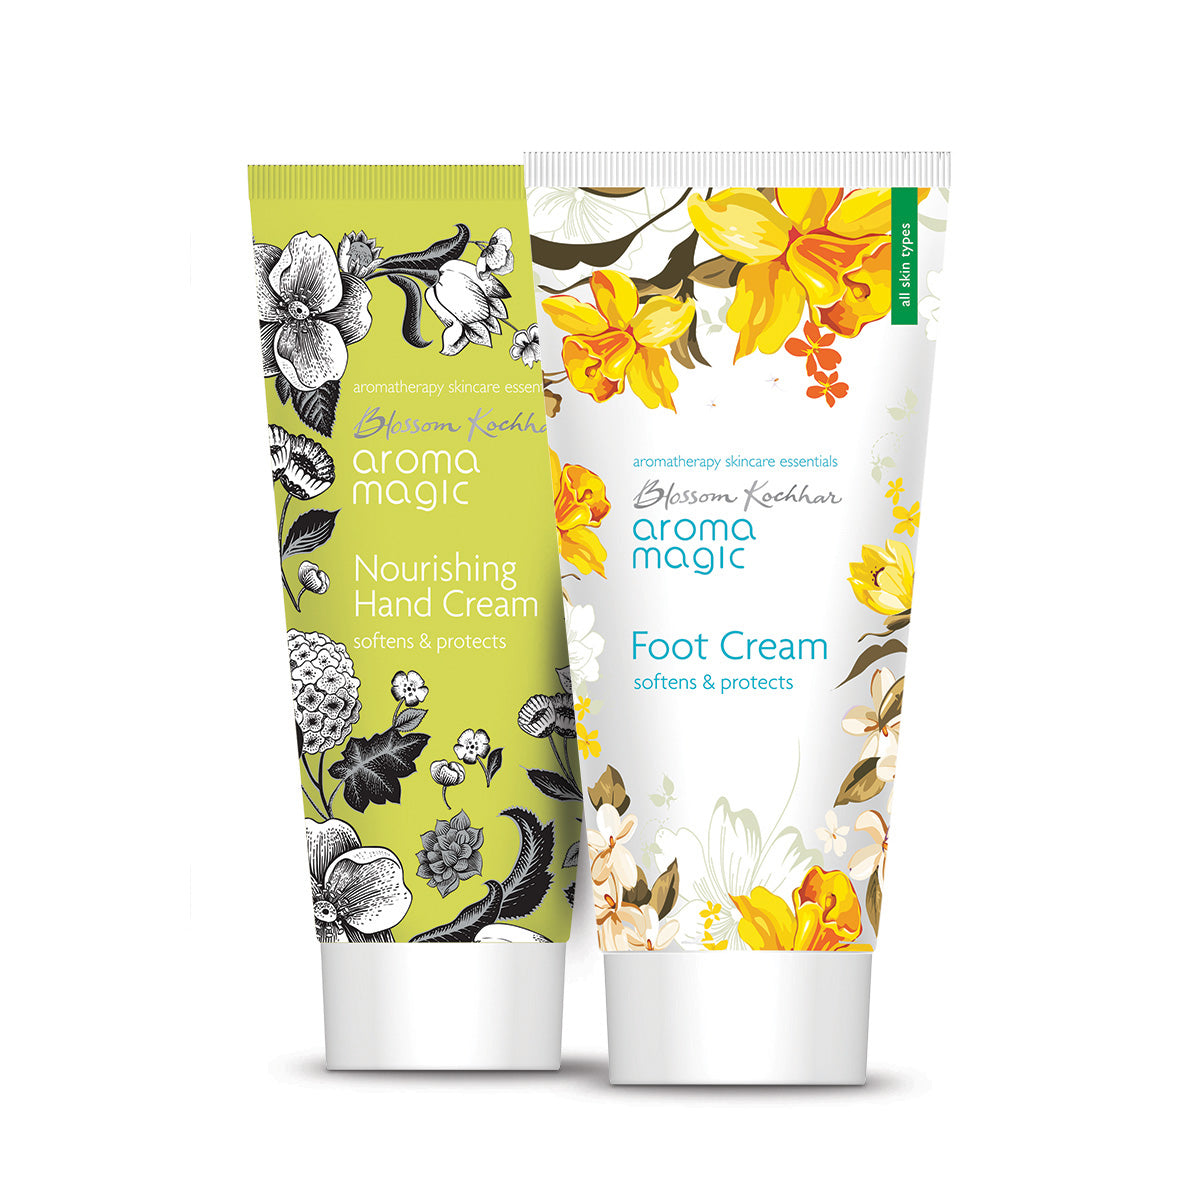 Nourishing Hand Cream and Foot Cream Combo (1709143556139)